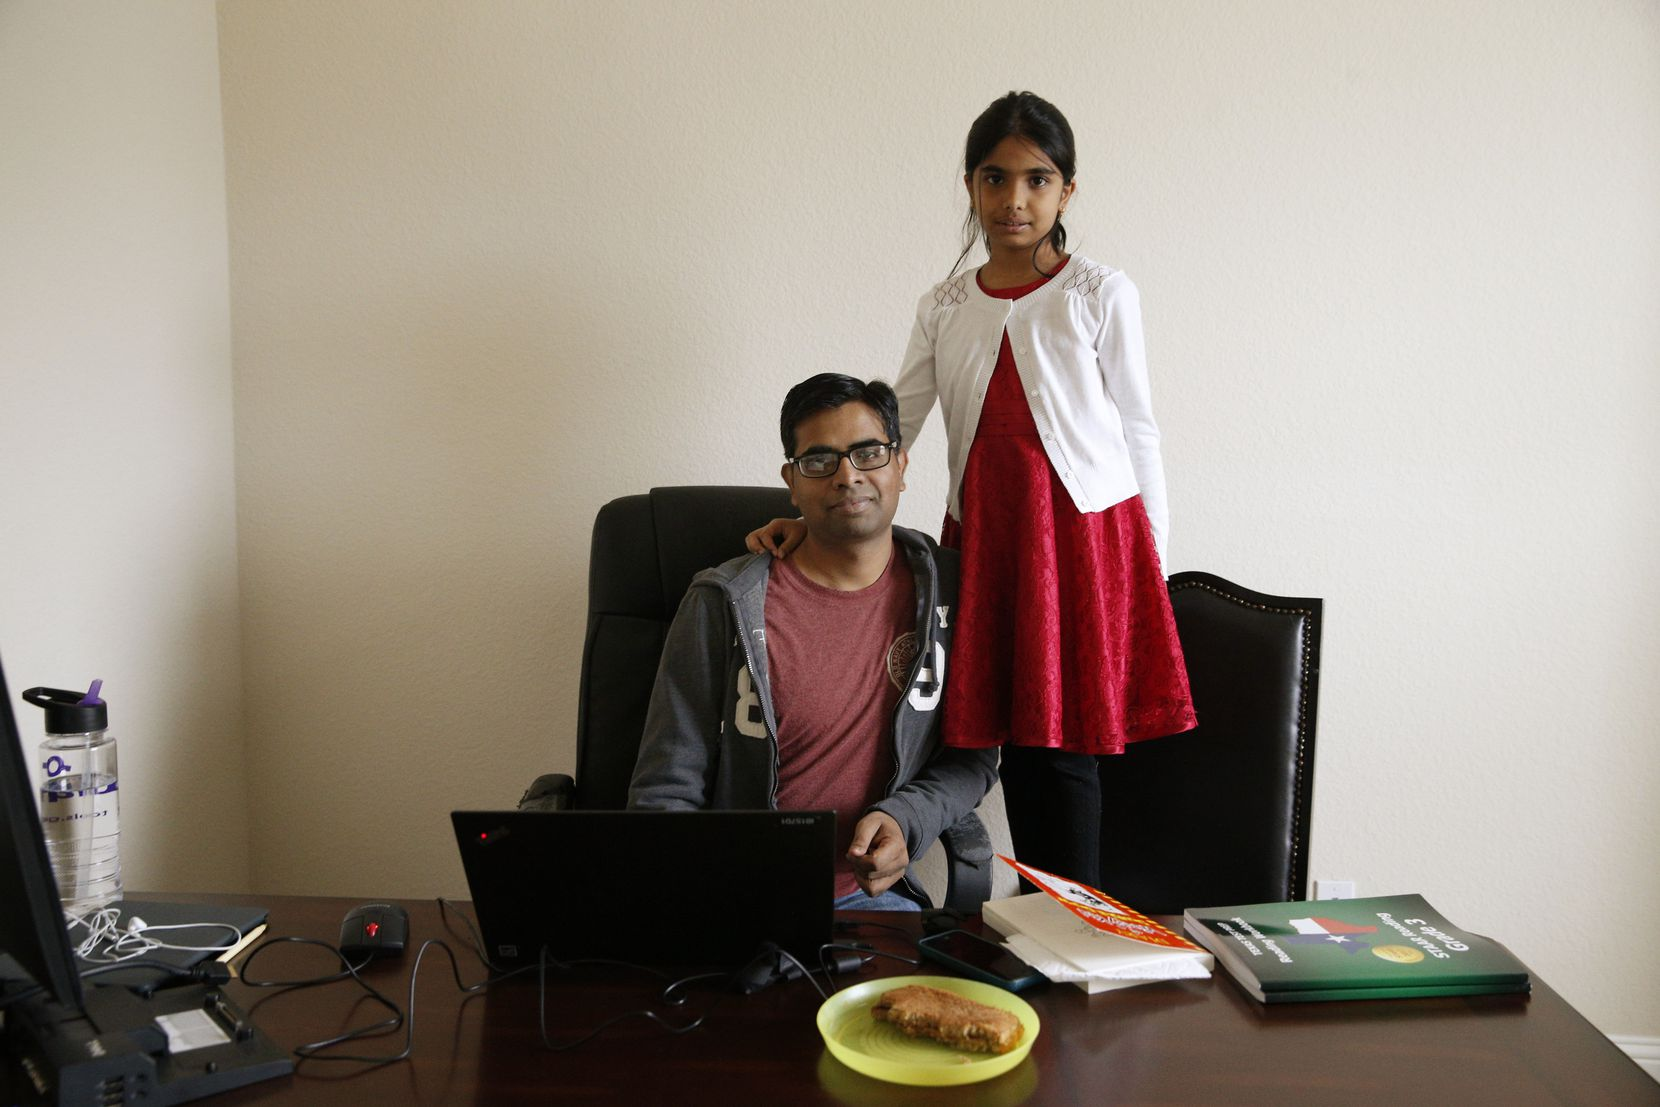 Parag Bakde, a H-1B visa holder who lives in Frisco, is stuck in the green card backlog. His daughter, Riddhi was three-months-old when he moved to the U.S. on an H-1B visa. She's now a third grader who likes to read books and make models of the solar system in her third grade science class.